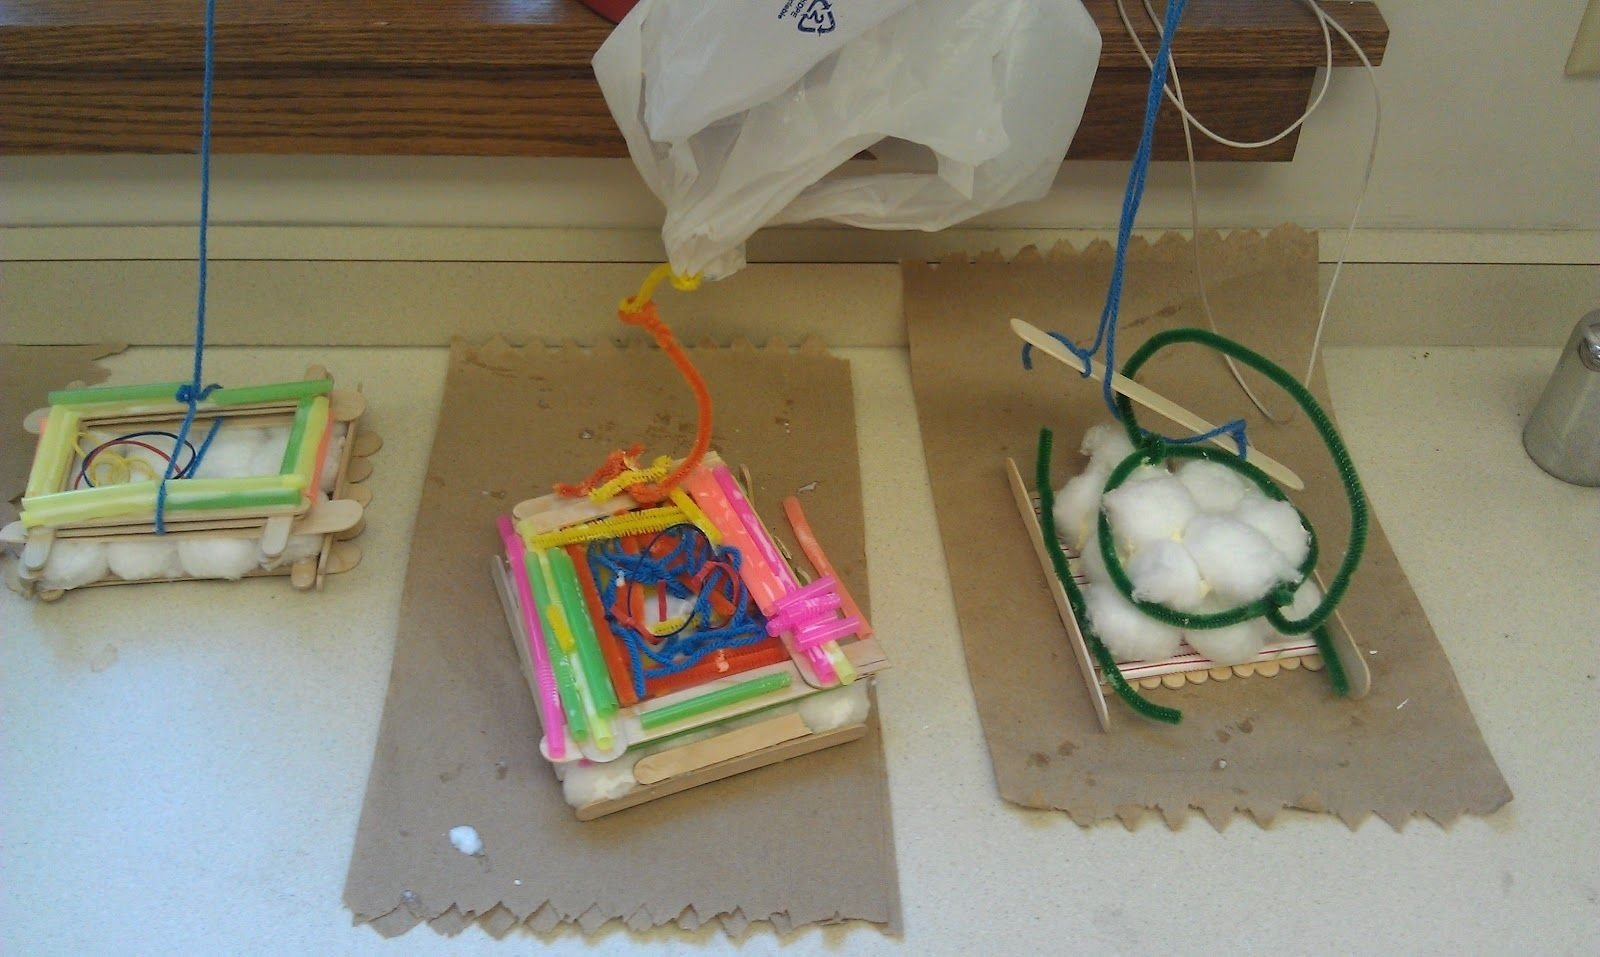 10 Trendy Egg Drop Project Ideas That Work egg drop project ideas that work science projects pinterest 2020